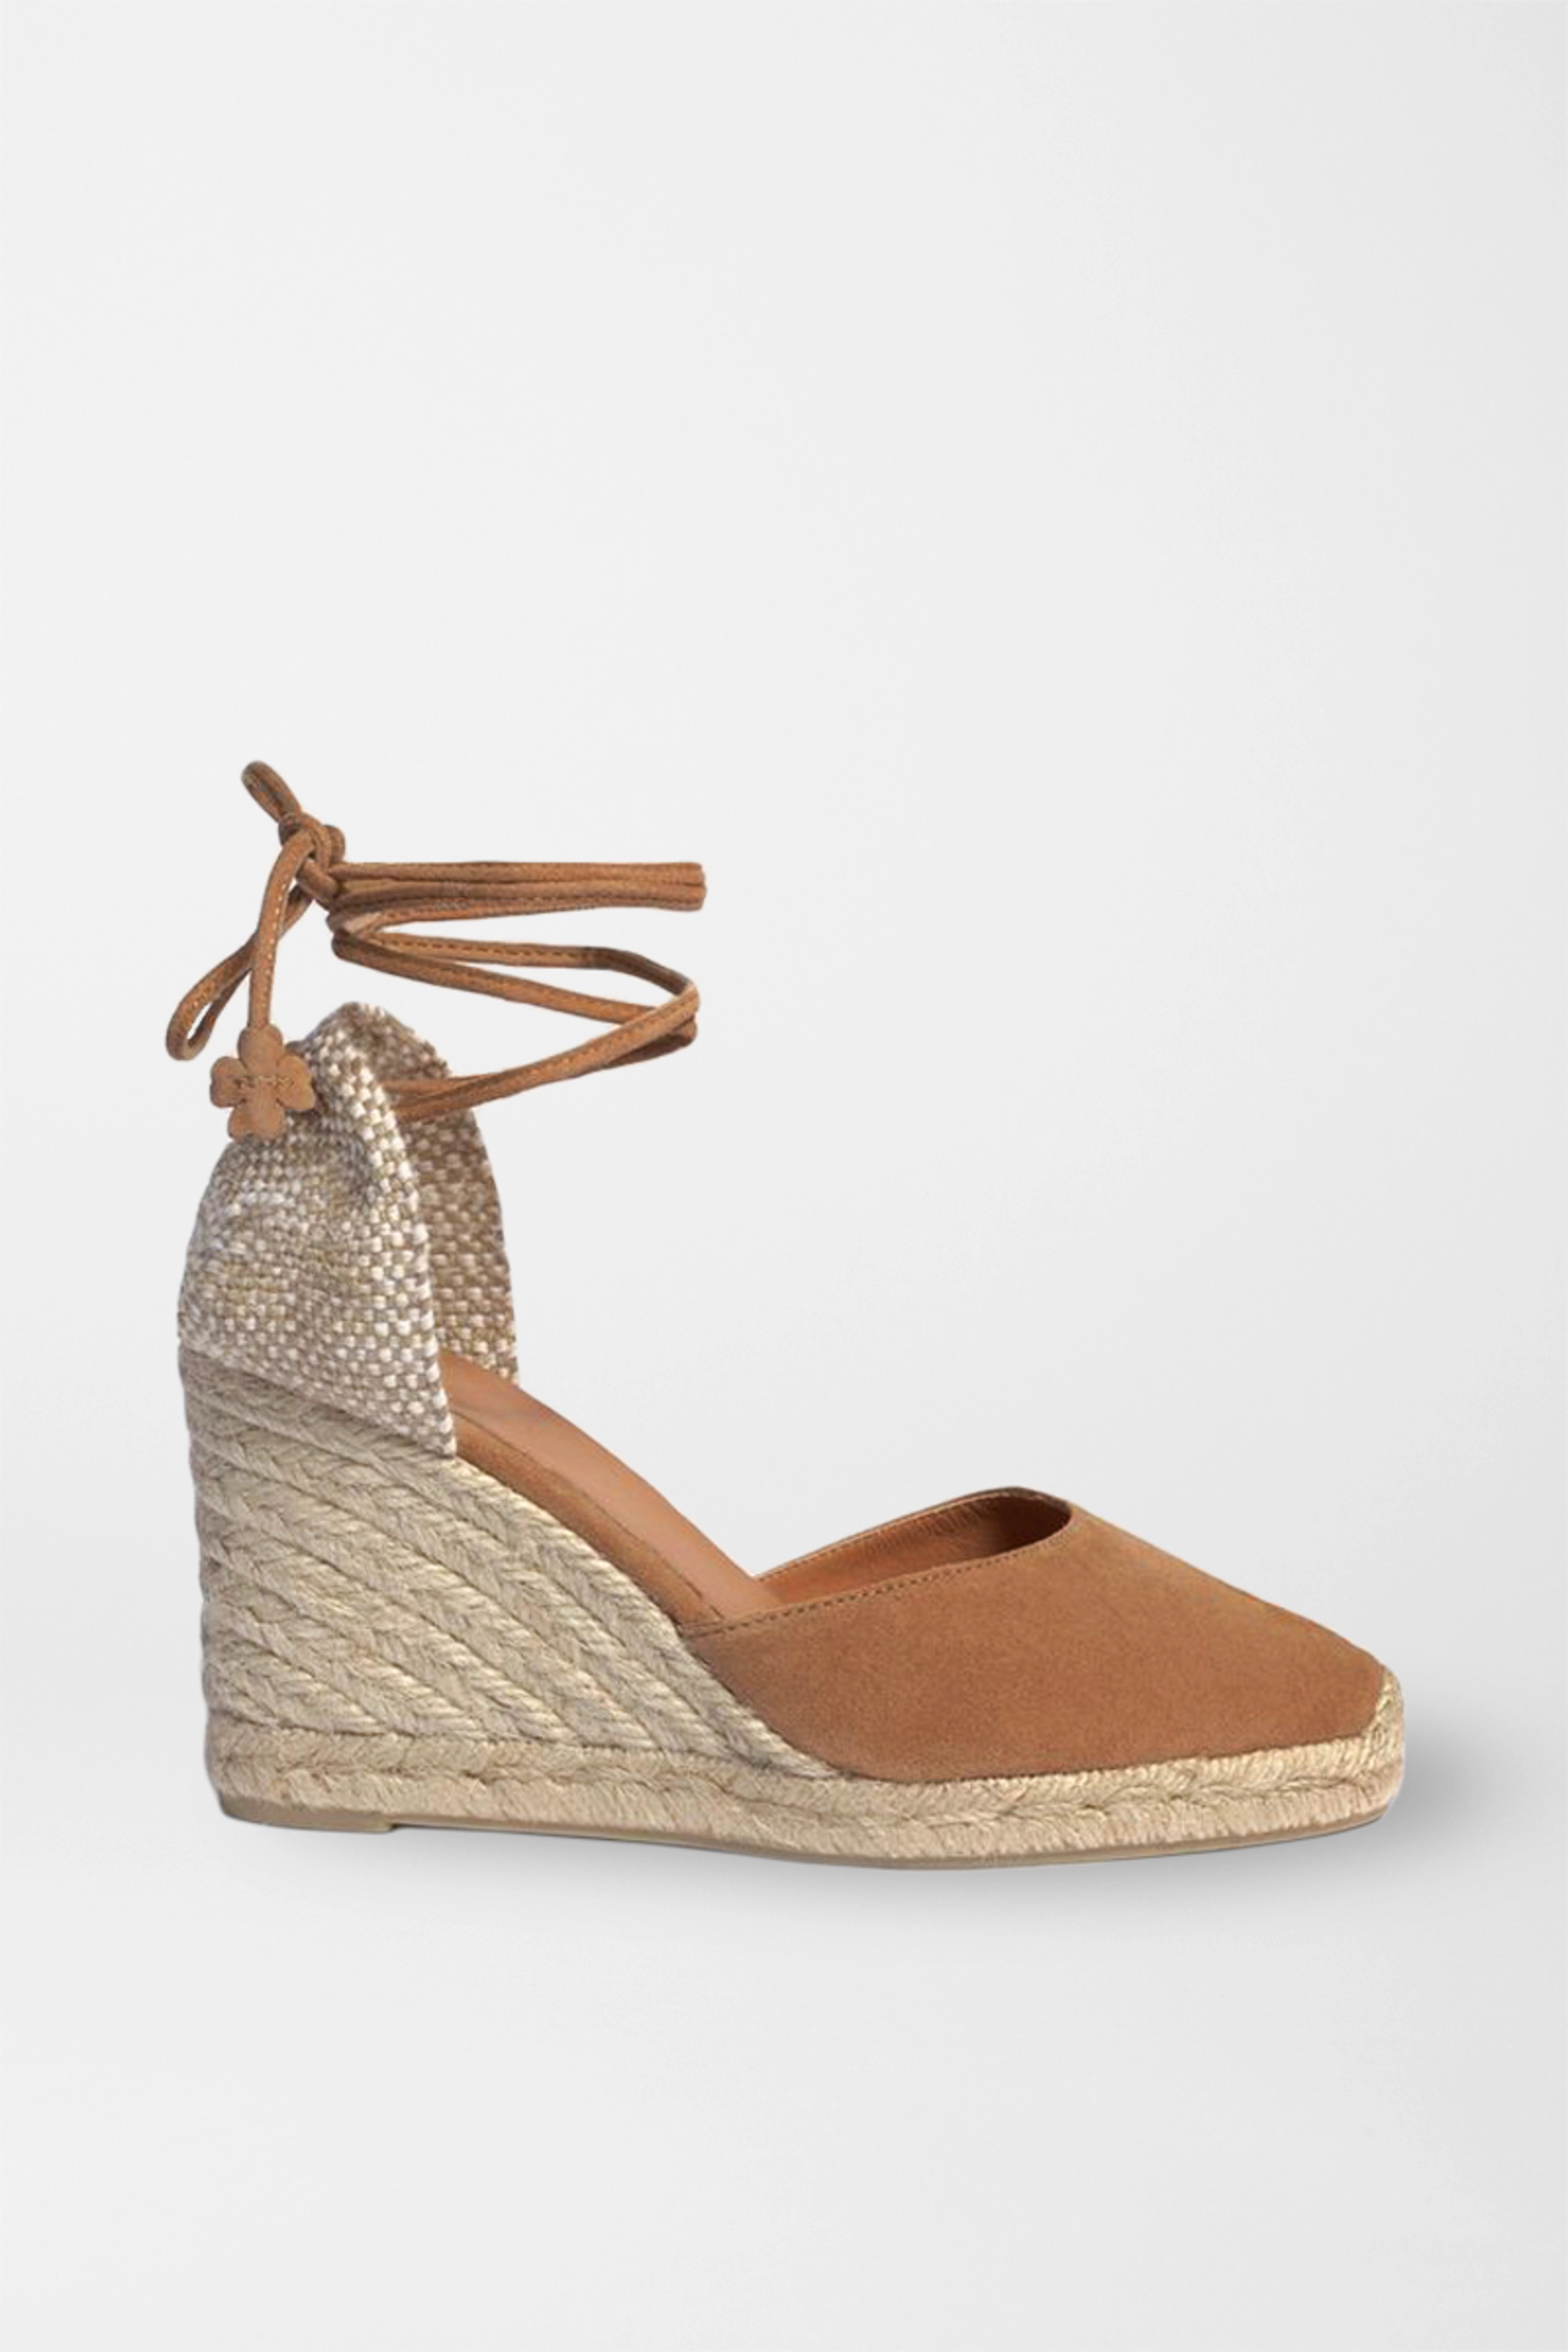 Wedge Espadrilles by CASTAÑER, available on net-a-porter.com for EUR120 Kate Middleton Shoes Exact Product